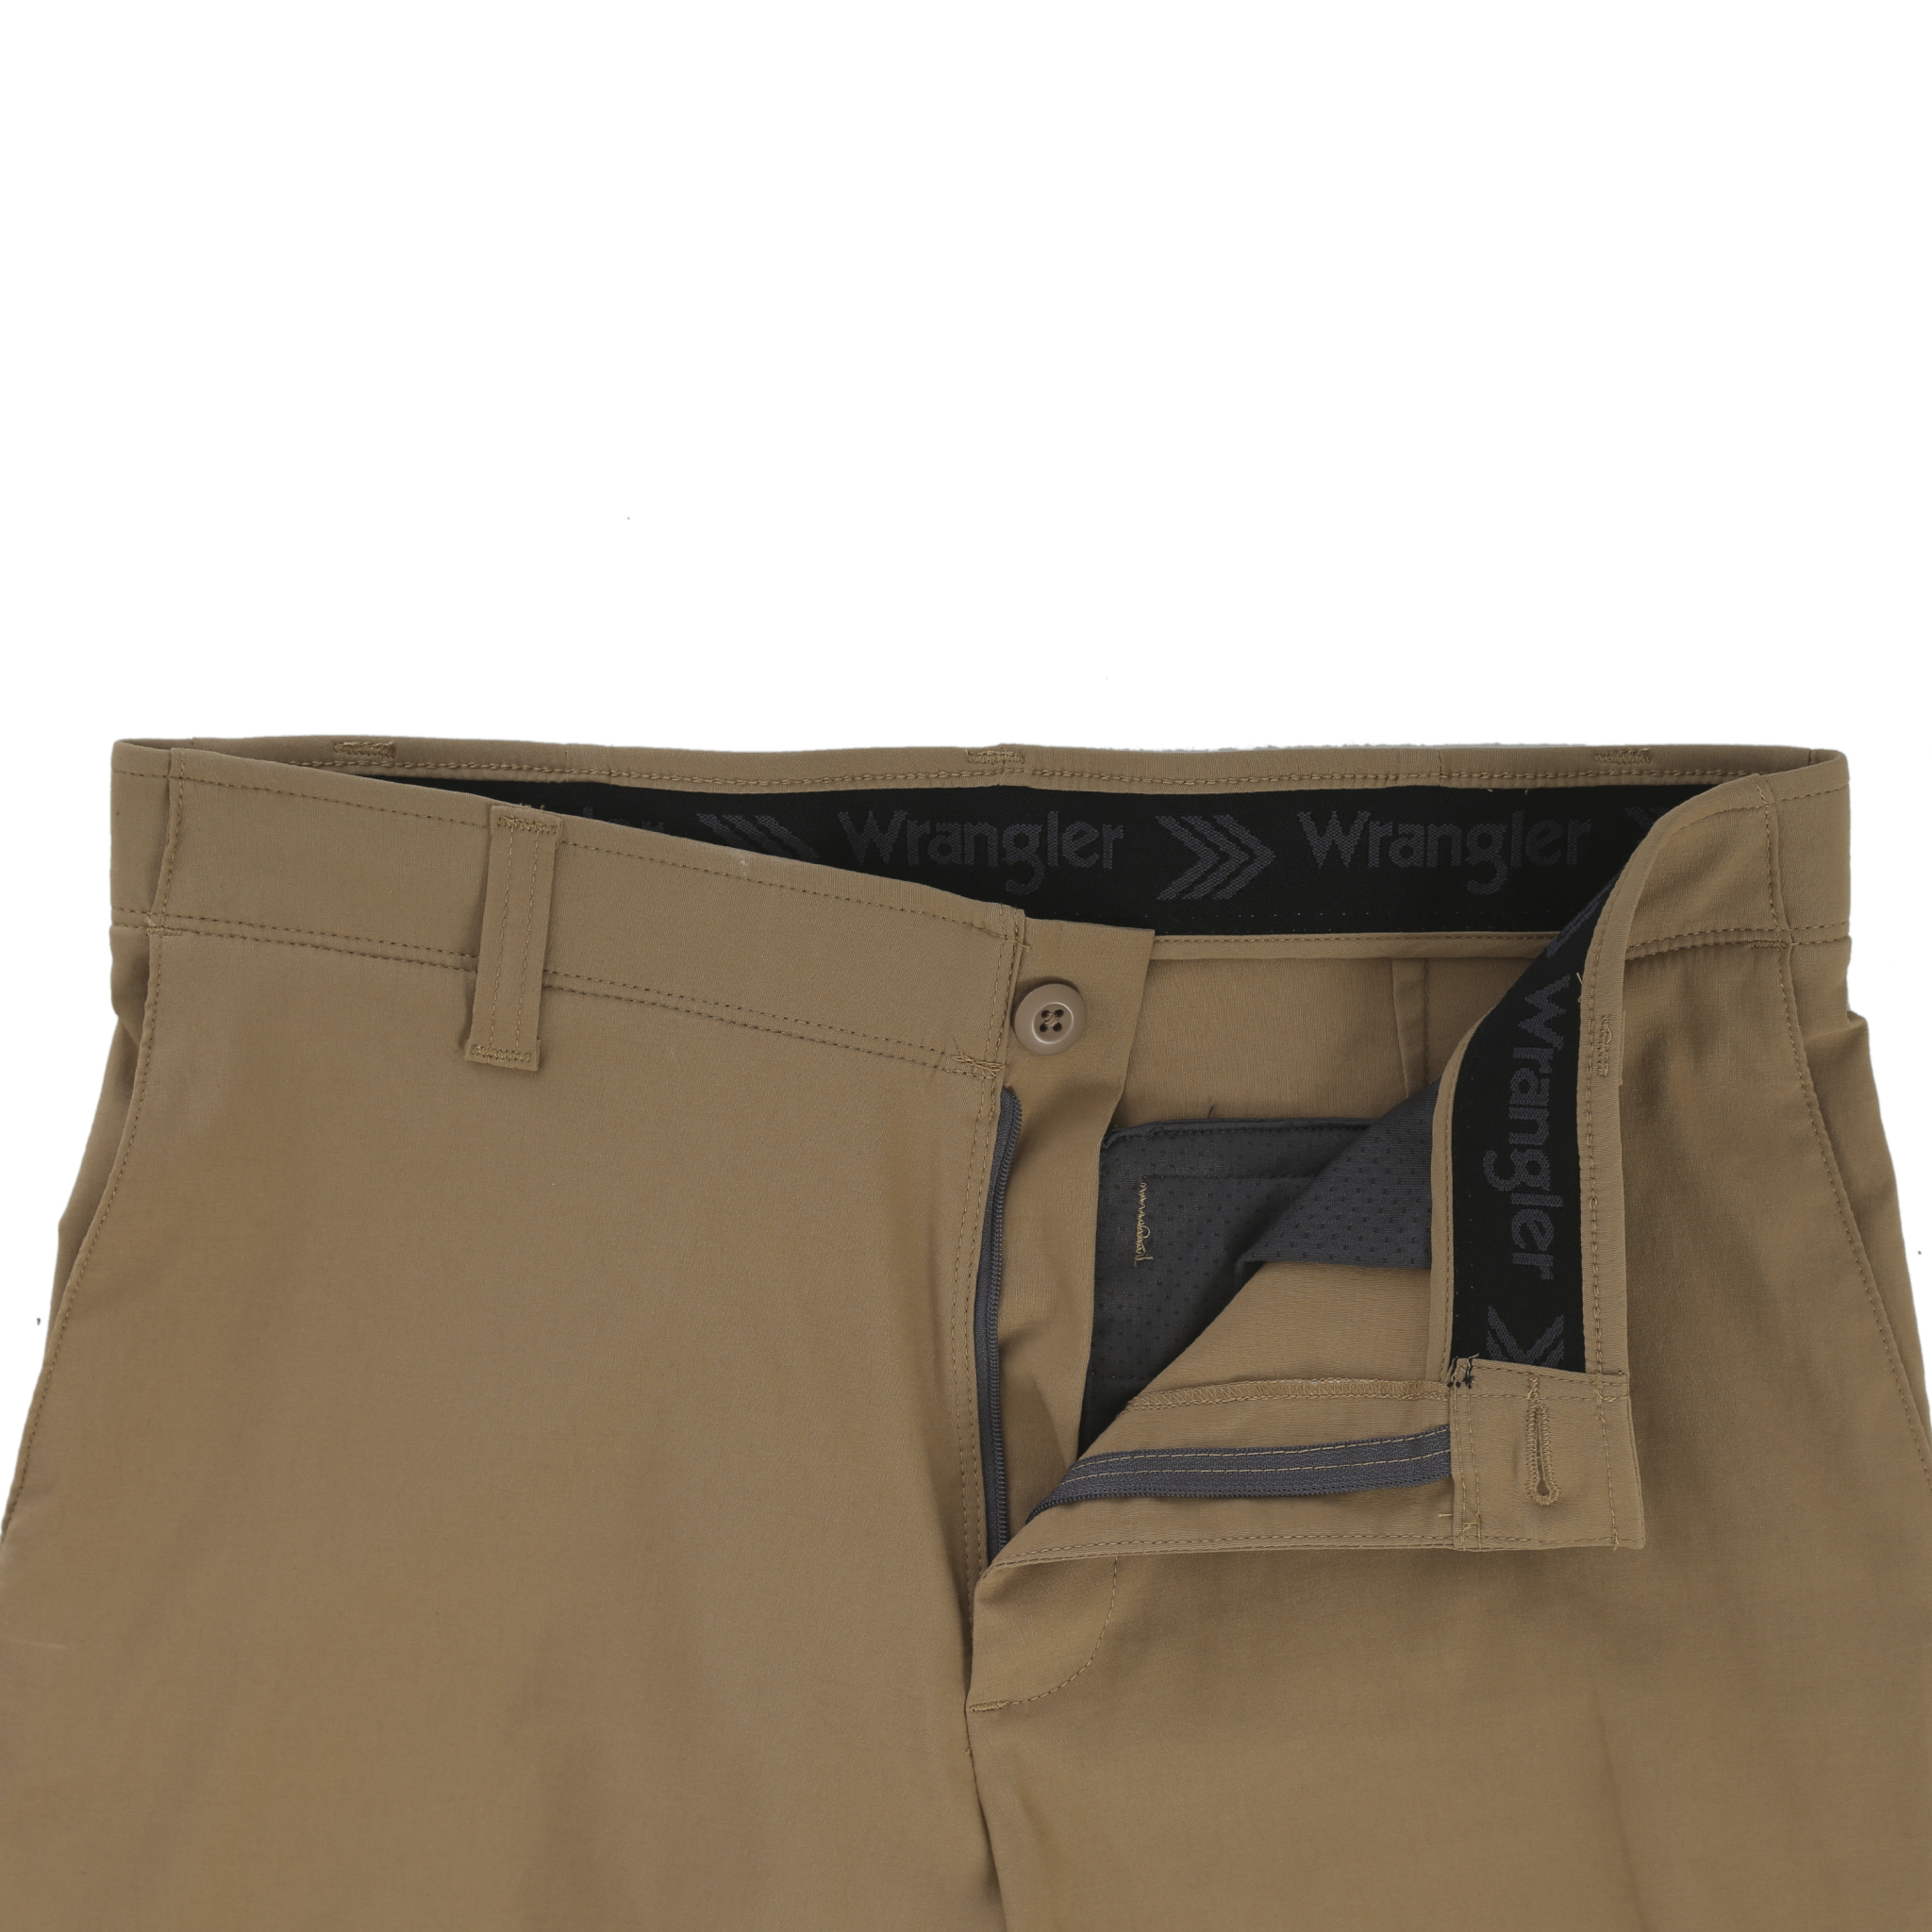 Wrangler-NEW-Solid-Men-039-s-Performance-Series-Outdoor-Comfort-Straight-Leg-Pants thumbnail 7